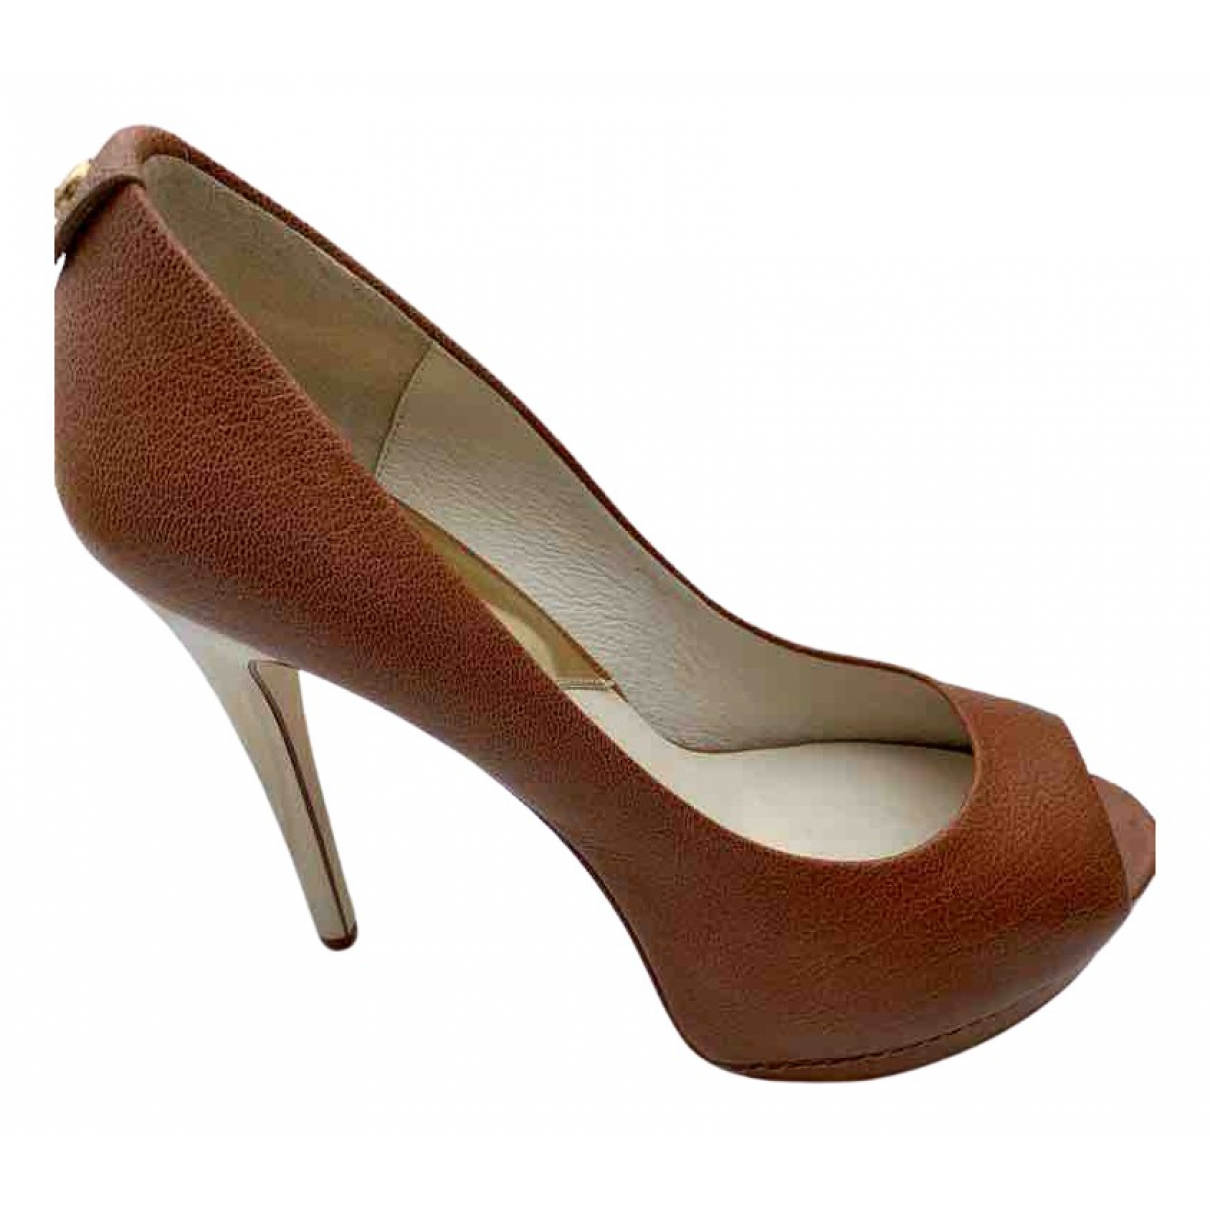 Michael Kors \N Brown Leather Heels for Women 9 US